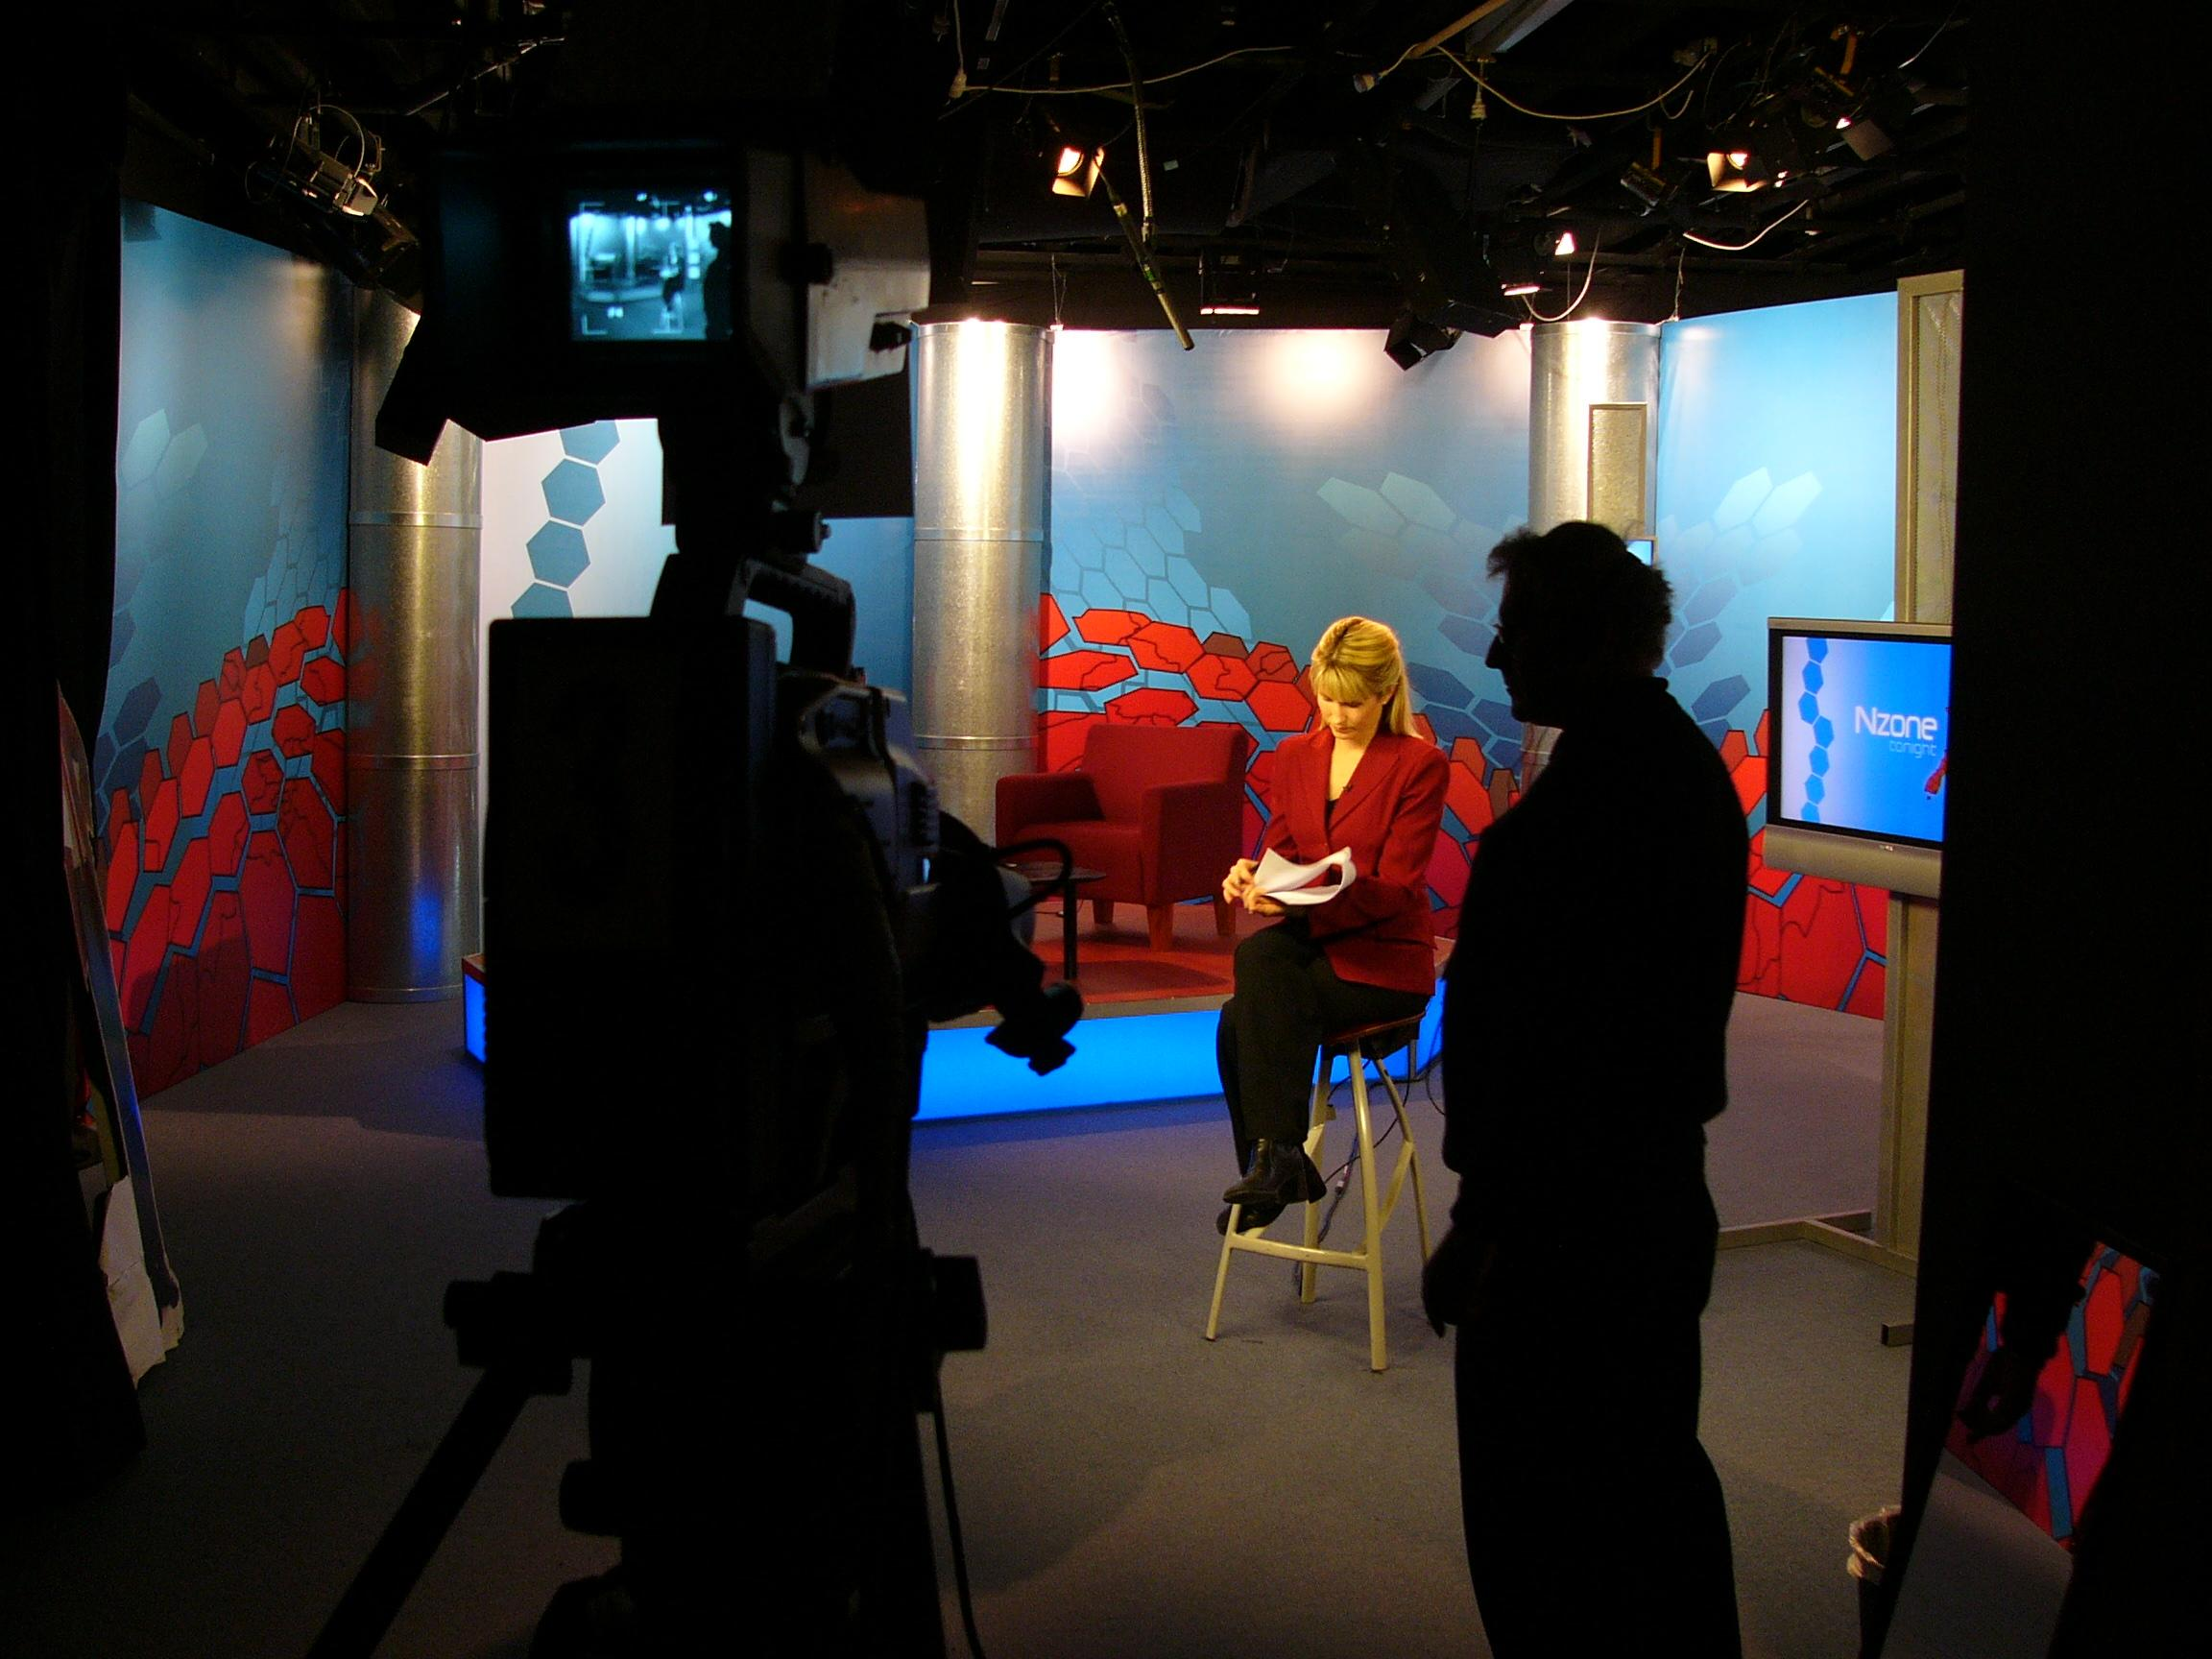 TV studio, cameramen in foreground with woman on stool in spotlight